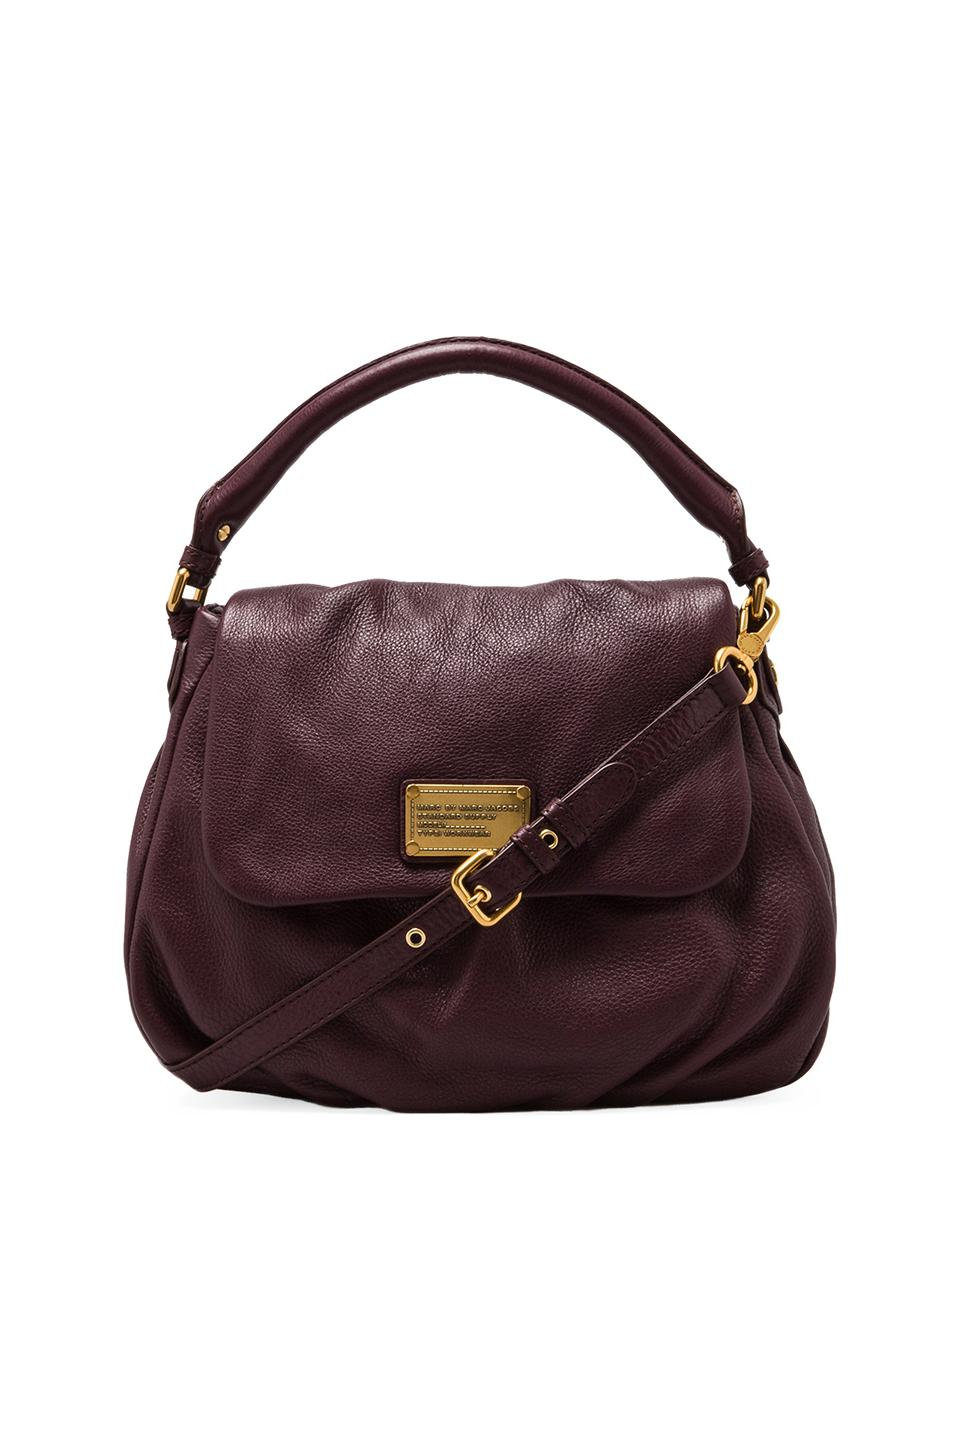 Marc by Marc Jacobs Classic Q Lil Ukita Shoulder Bag in Cardamom Brown